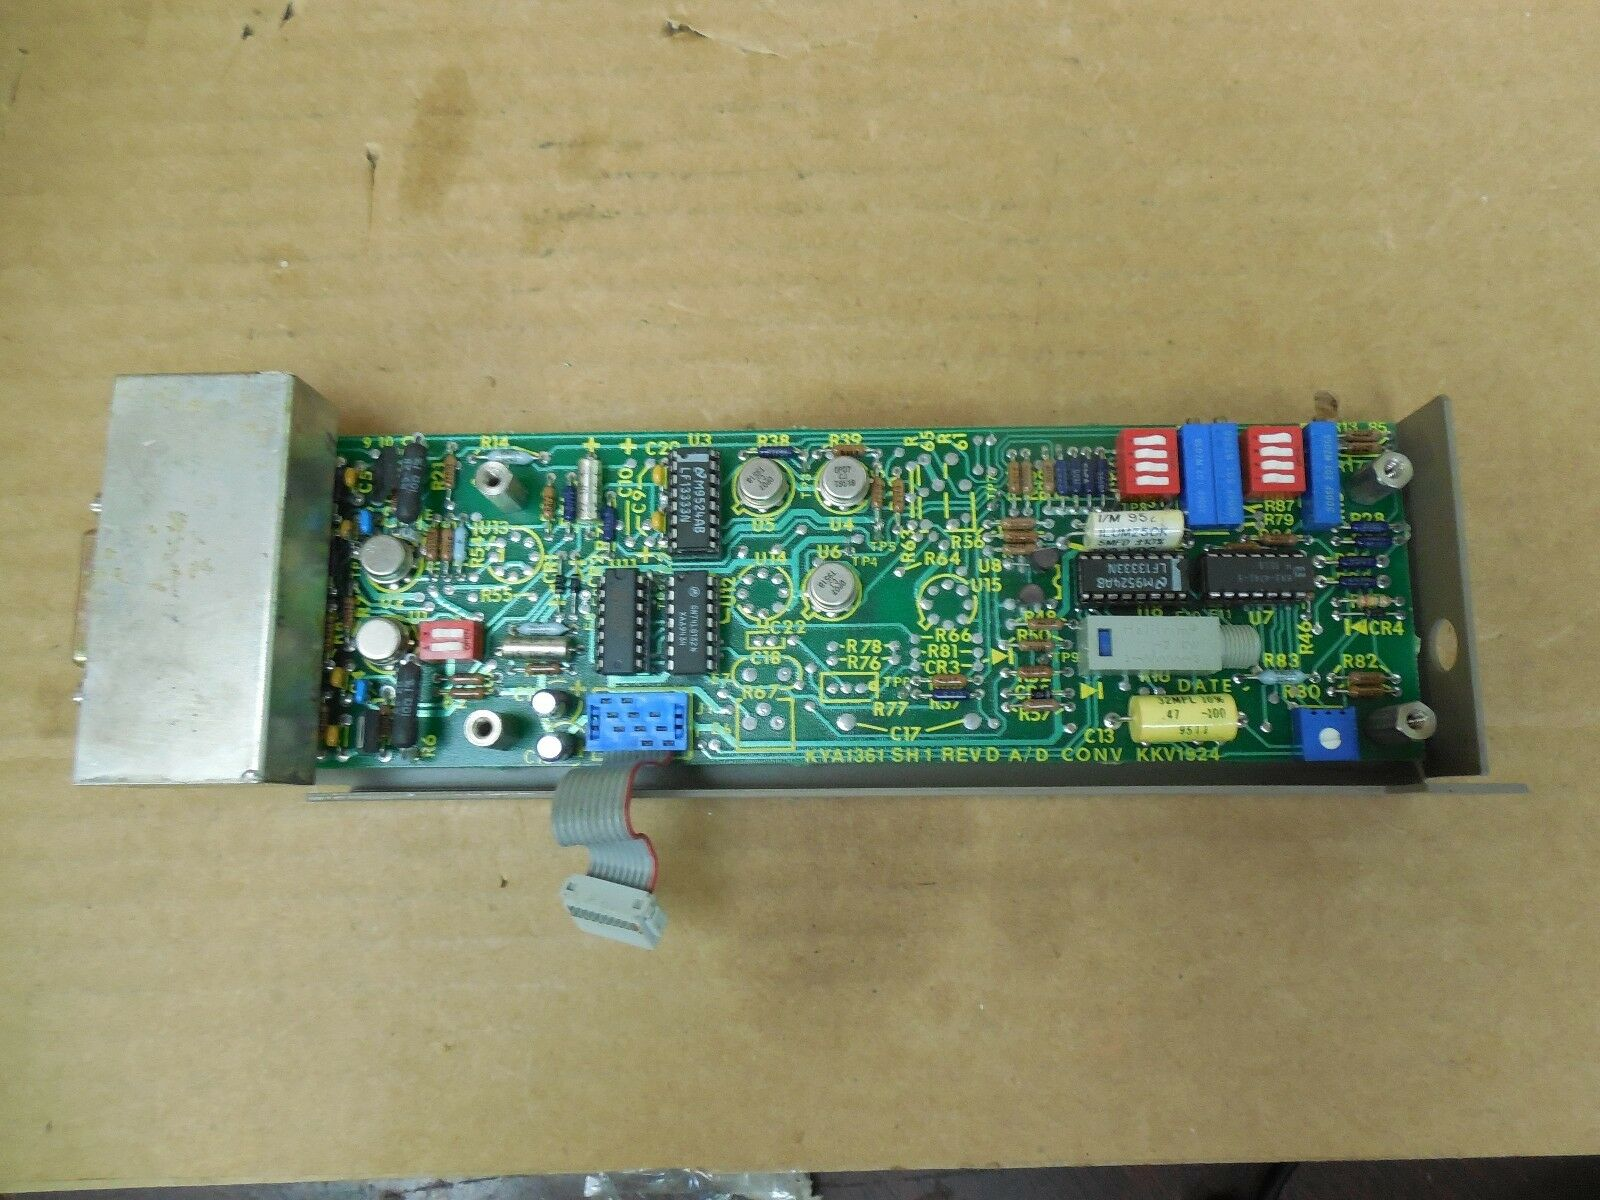 No Name A D Conversion Board KYA1361 Rev D Used